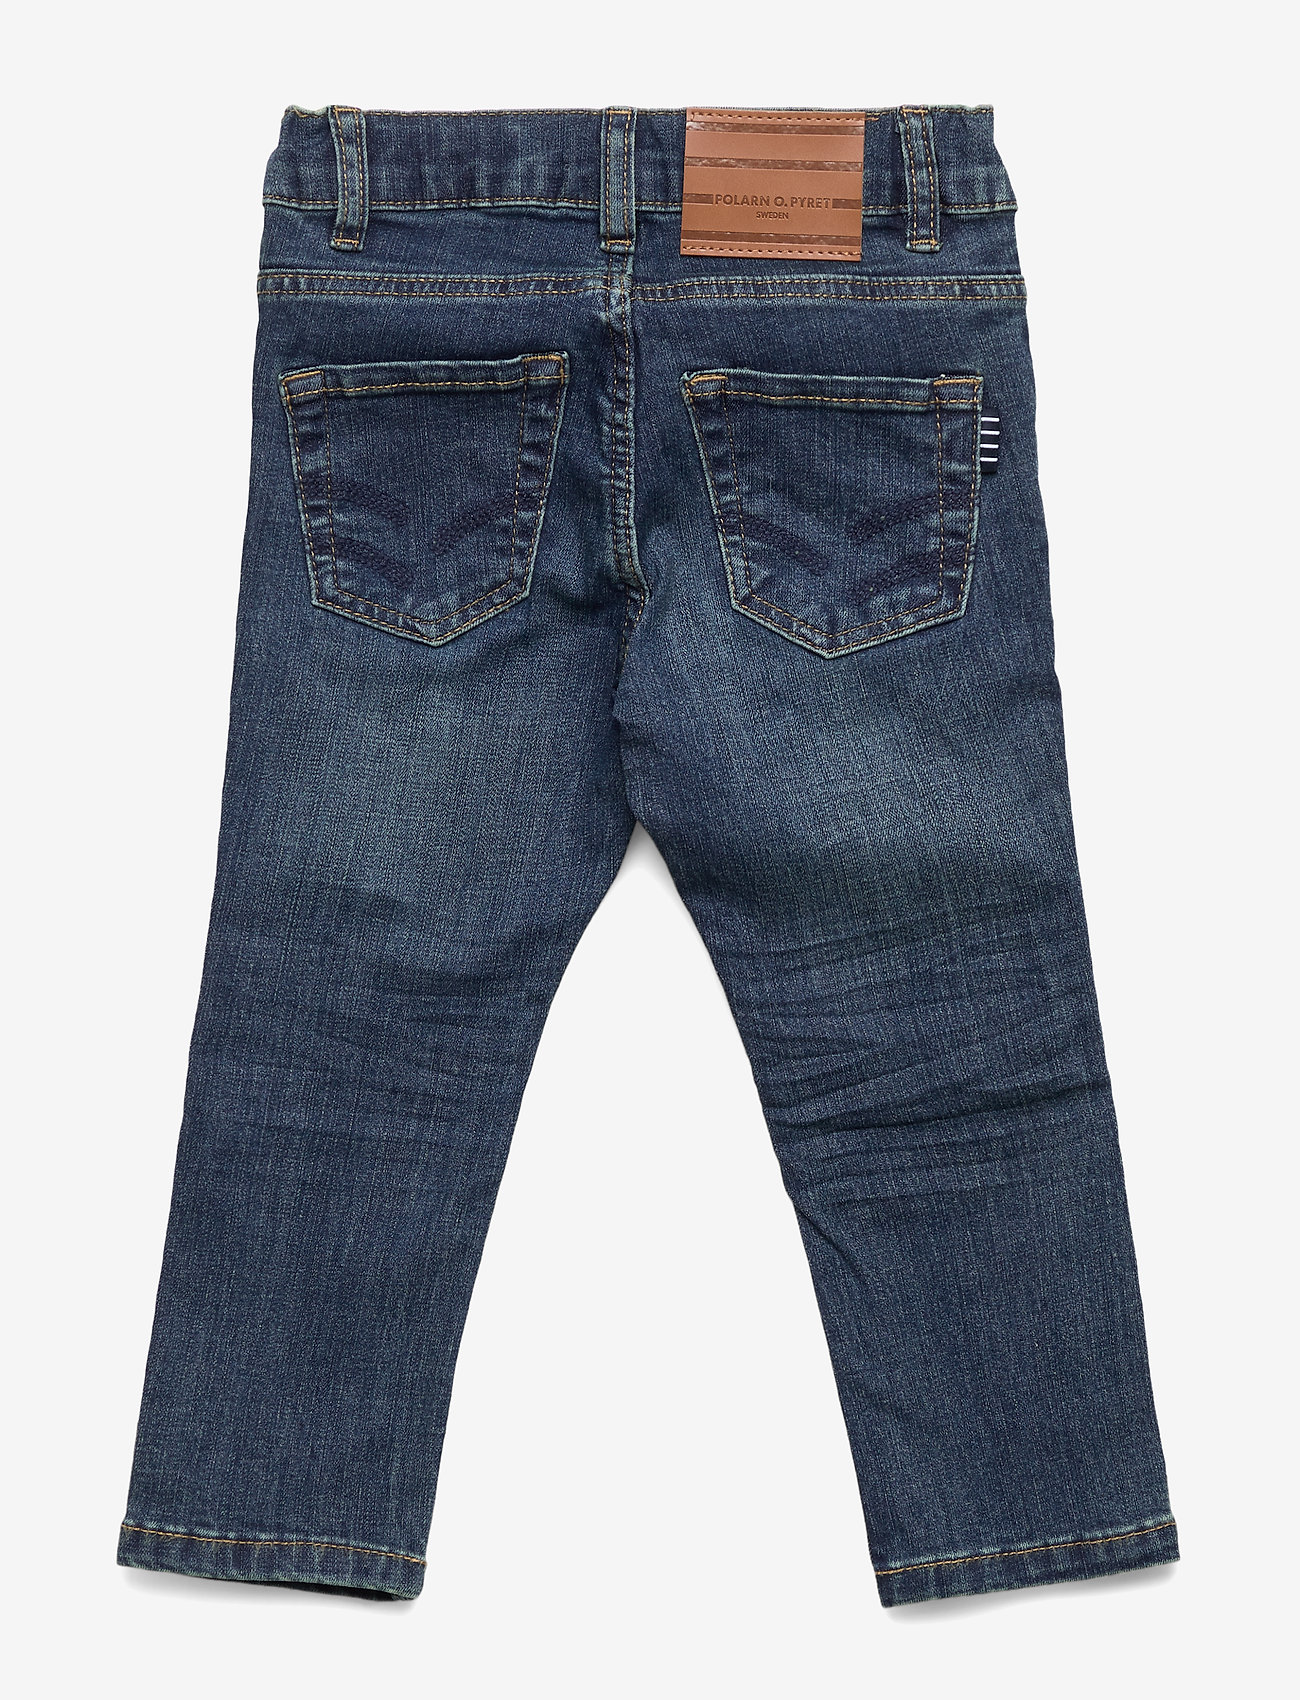 Polarn O. Pyret - Super slim fit, stretch jeans - jeans - blue denim - 1